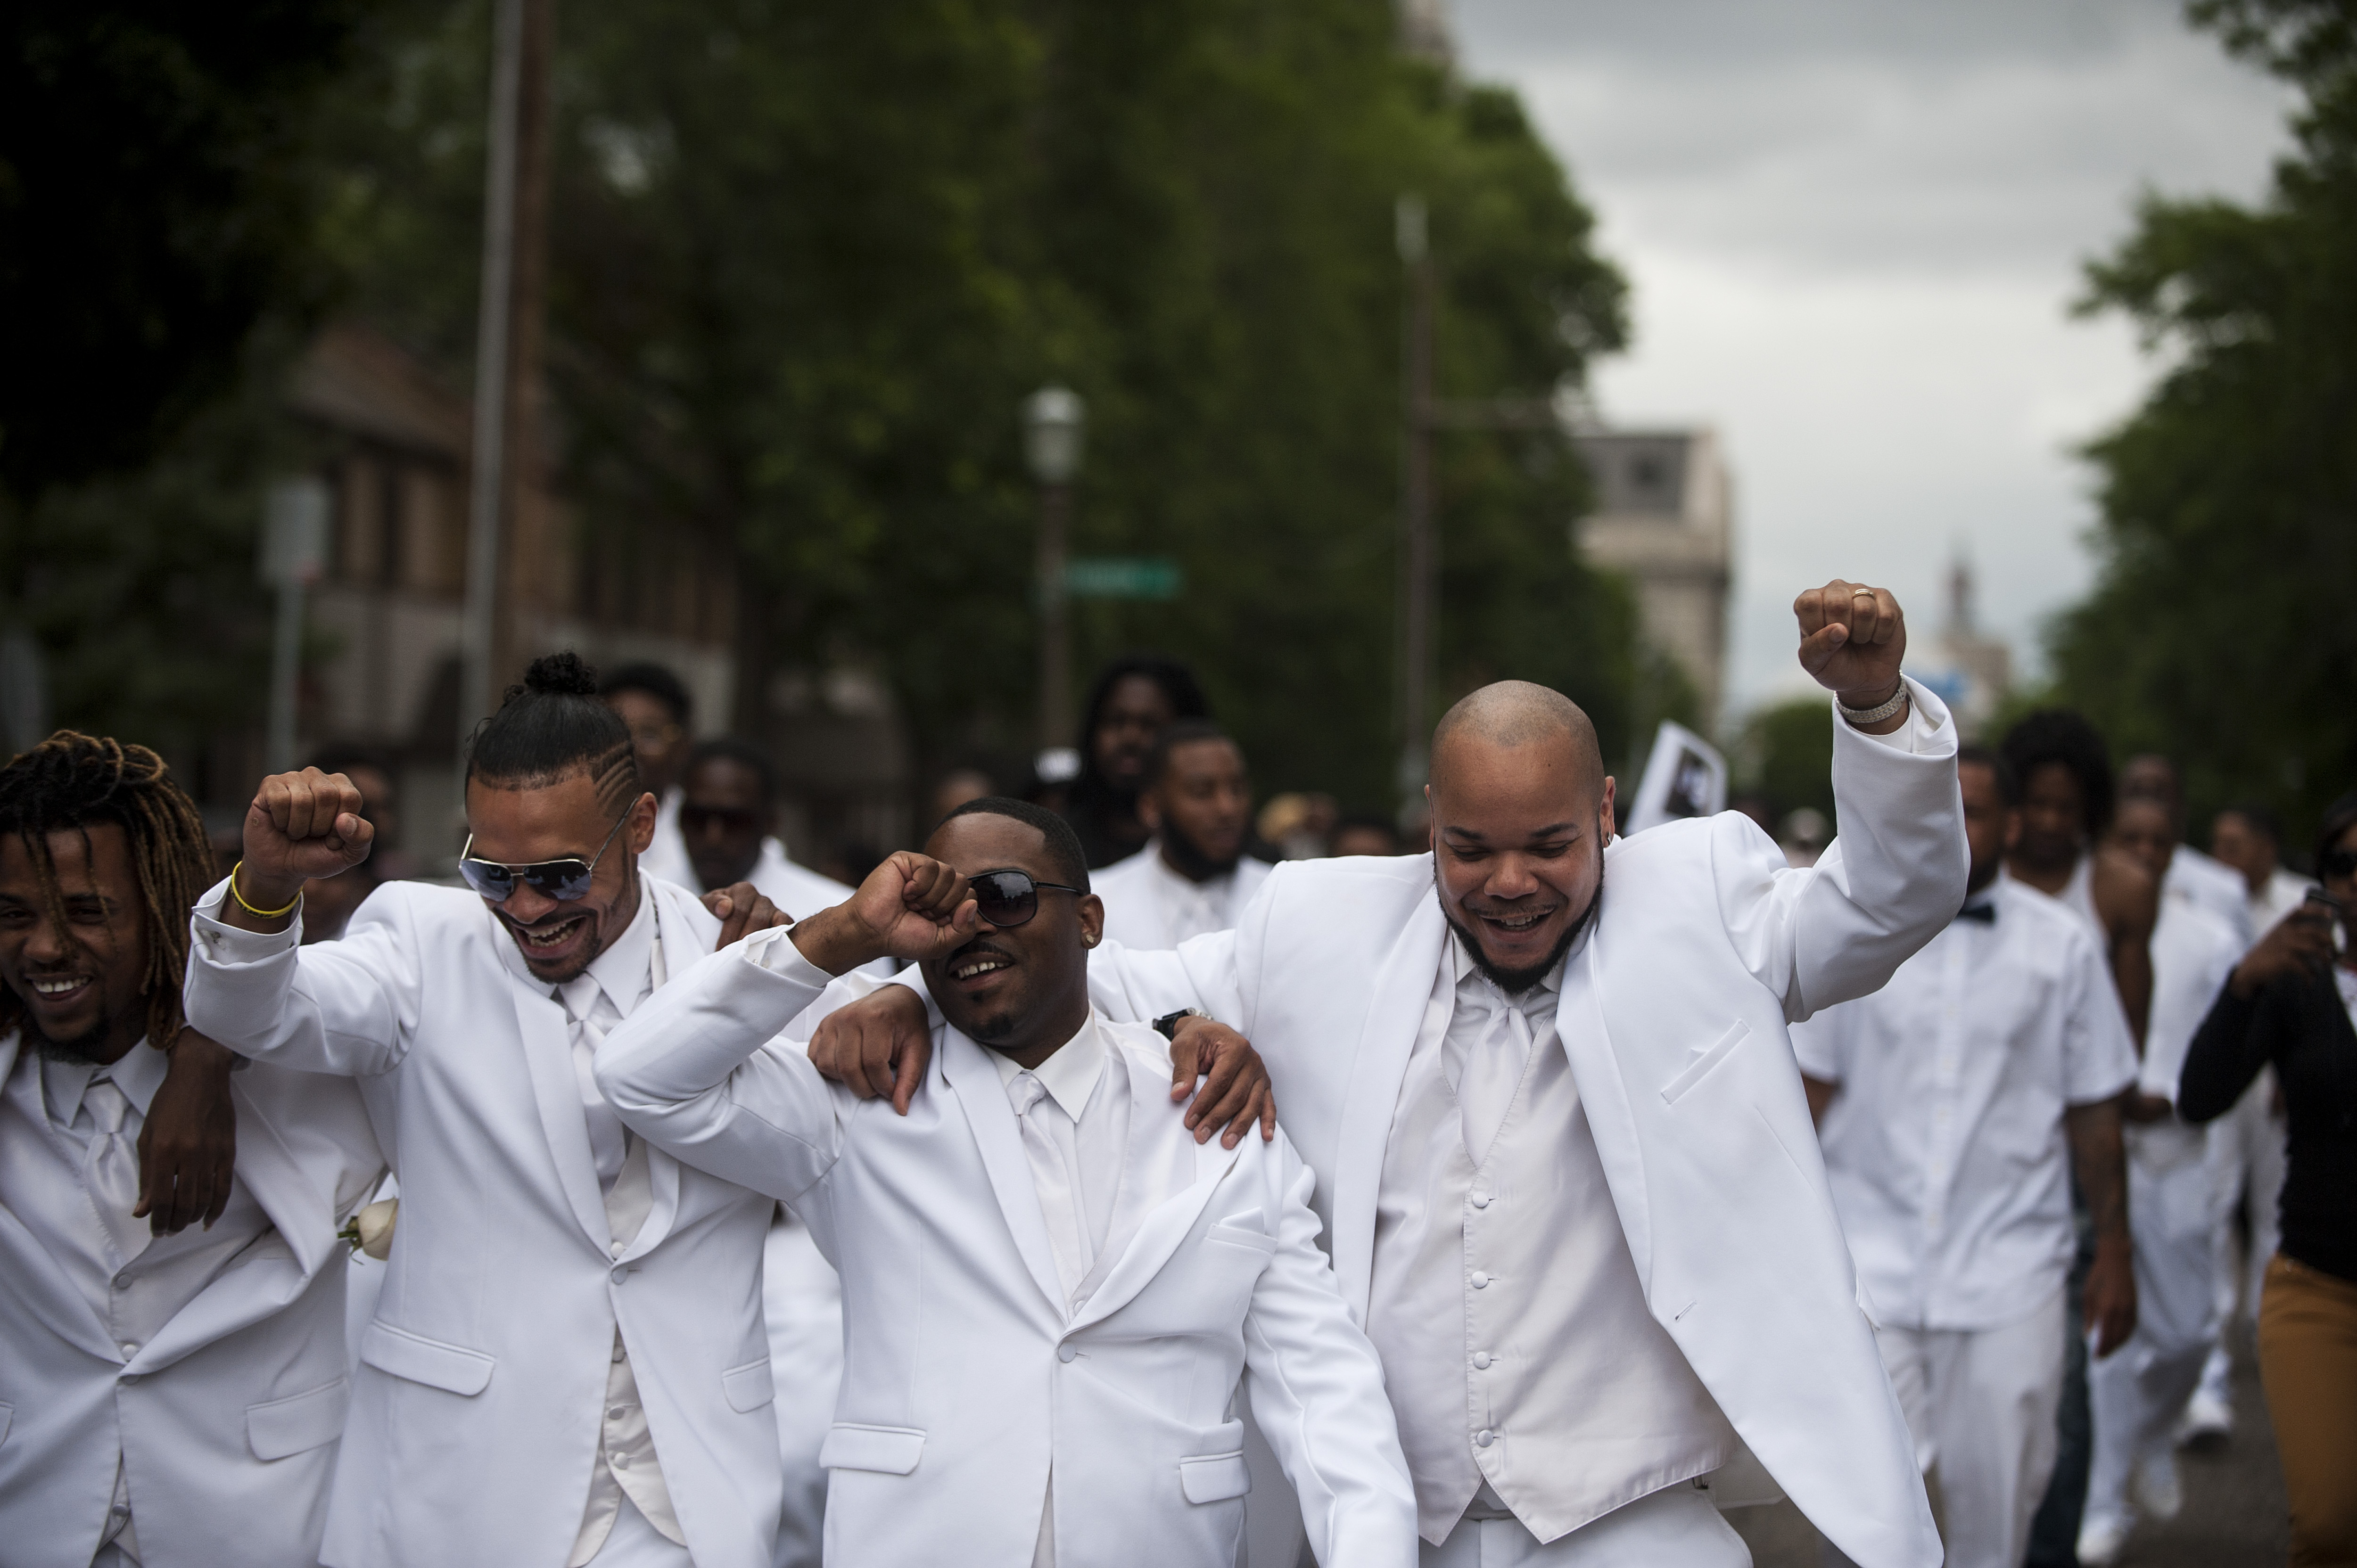 Pallbearers lead a march down Selby Avenue after the funeral of Philando Castile at the Cathedral of St. Paul on July 14, 2016 in St. Paul, Minnesota. Castile was shot and killed on July 6, 2016 by police in Falcon Heights, Minnesota.